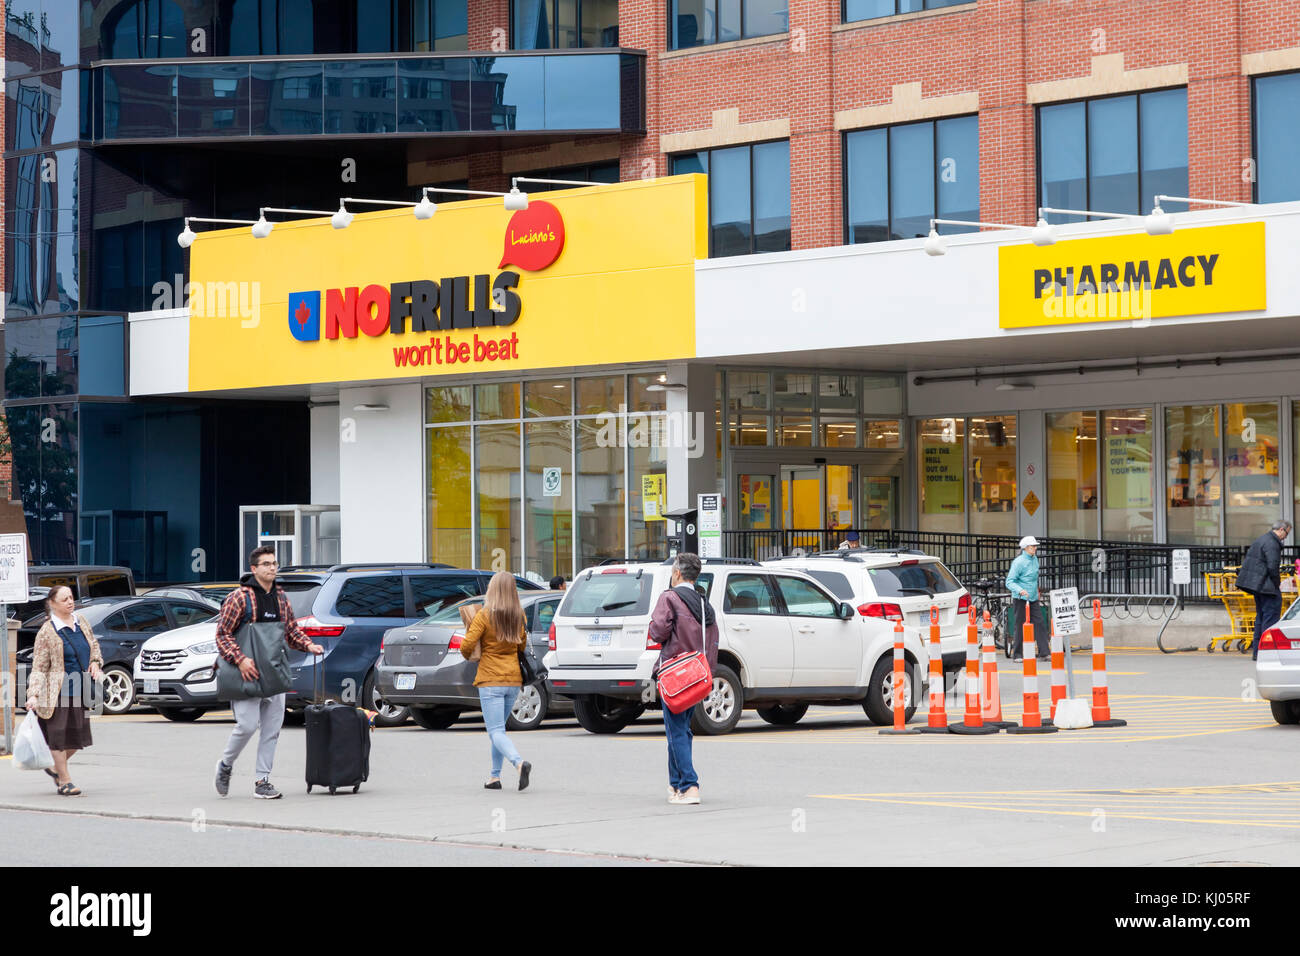 Toronto, Canada - Oct 13, 2017: No Frills grocery store in the city of Toronto. Province of Ontario, Canada Stock Photo